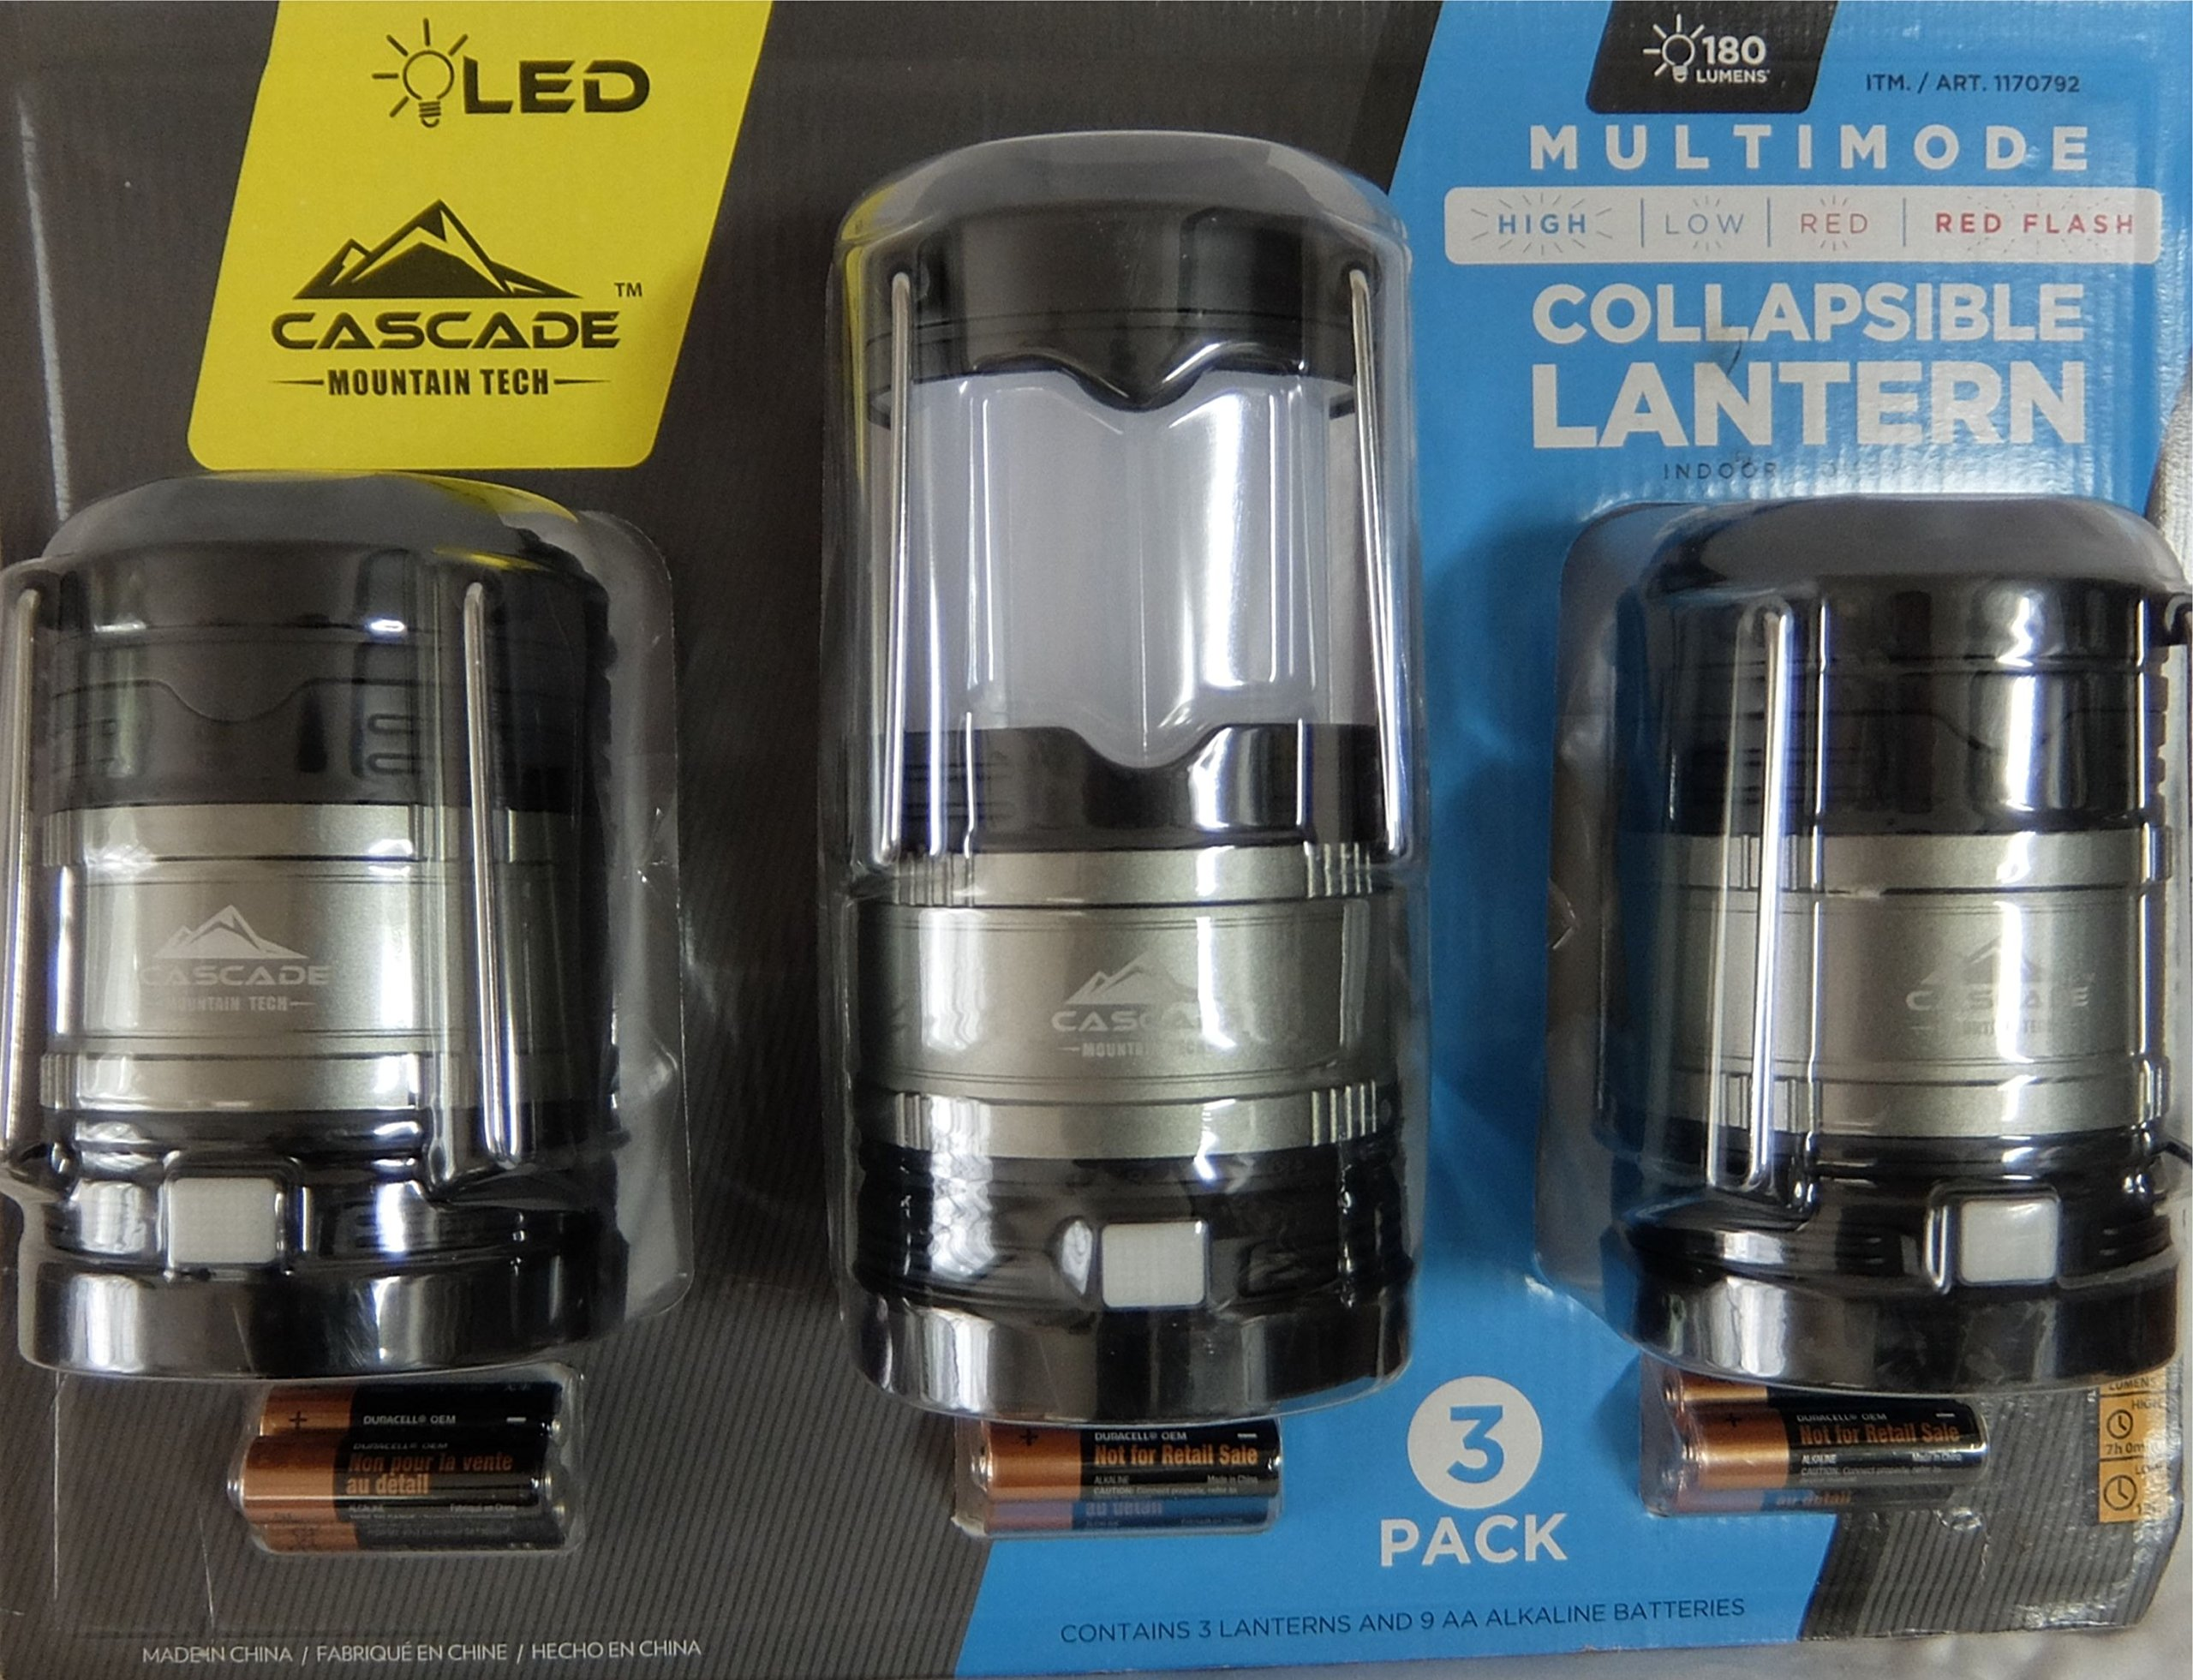 Cascade Mountain Tech Collapsible LED Lantern, Perfect Lighting for Camping, BBQ's and Emergency Light - 3 Pack Batteries Included